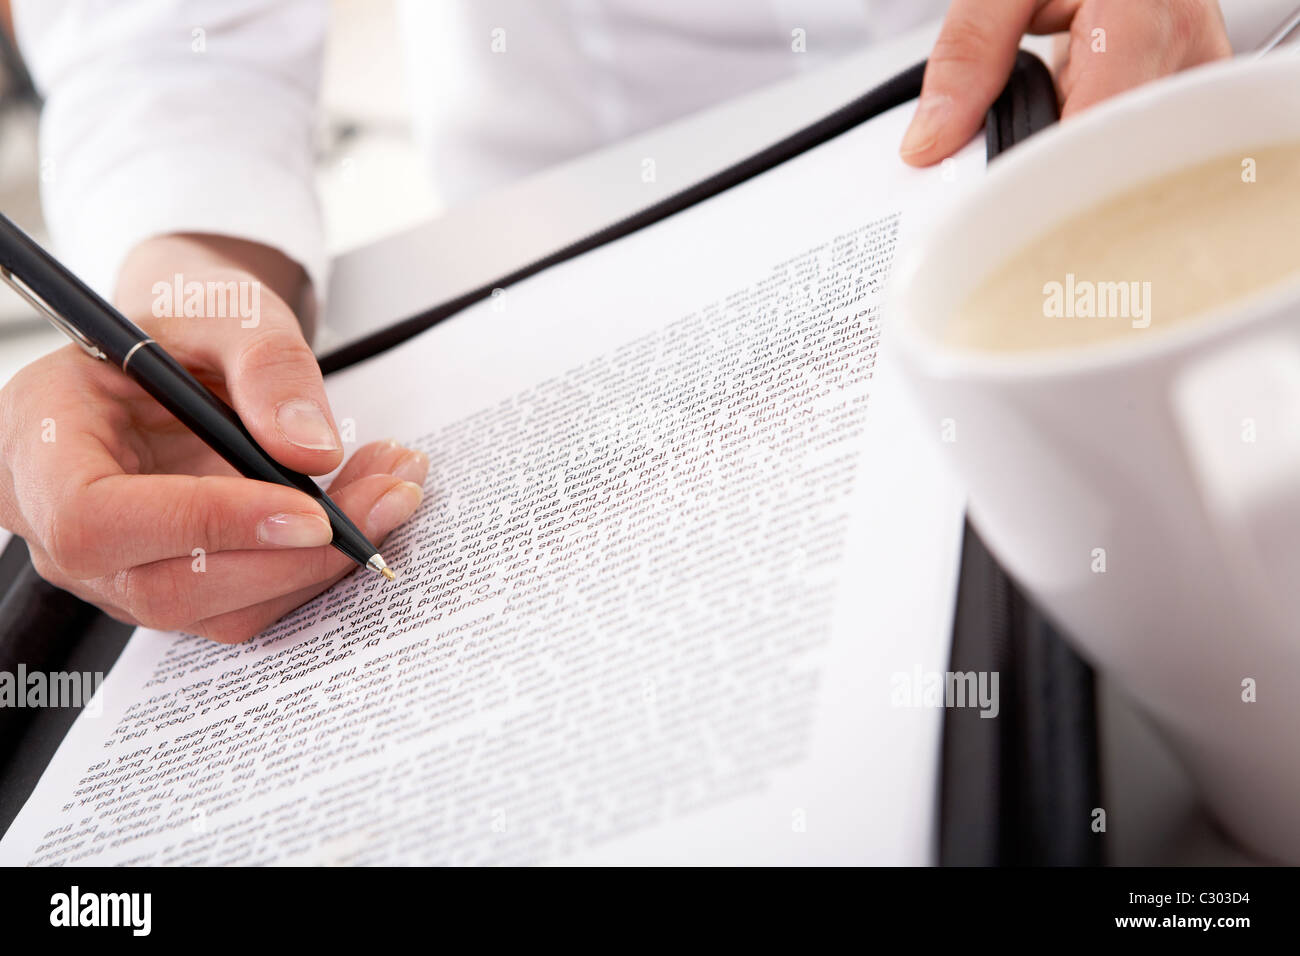 Close-up of businesswoman's hand holding pen over document with white cup near by Stock Photo